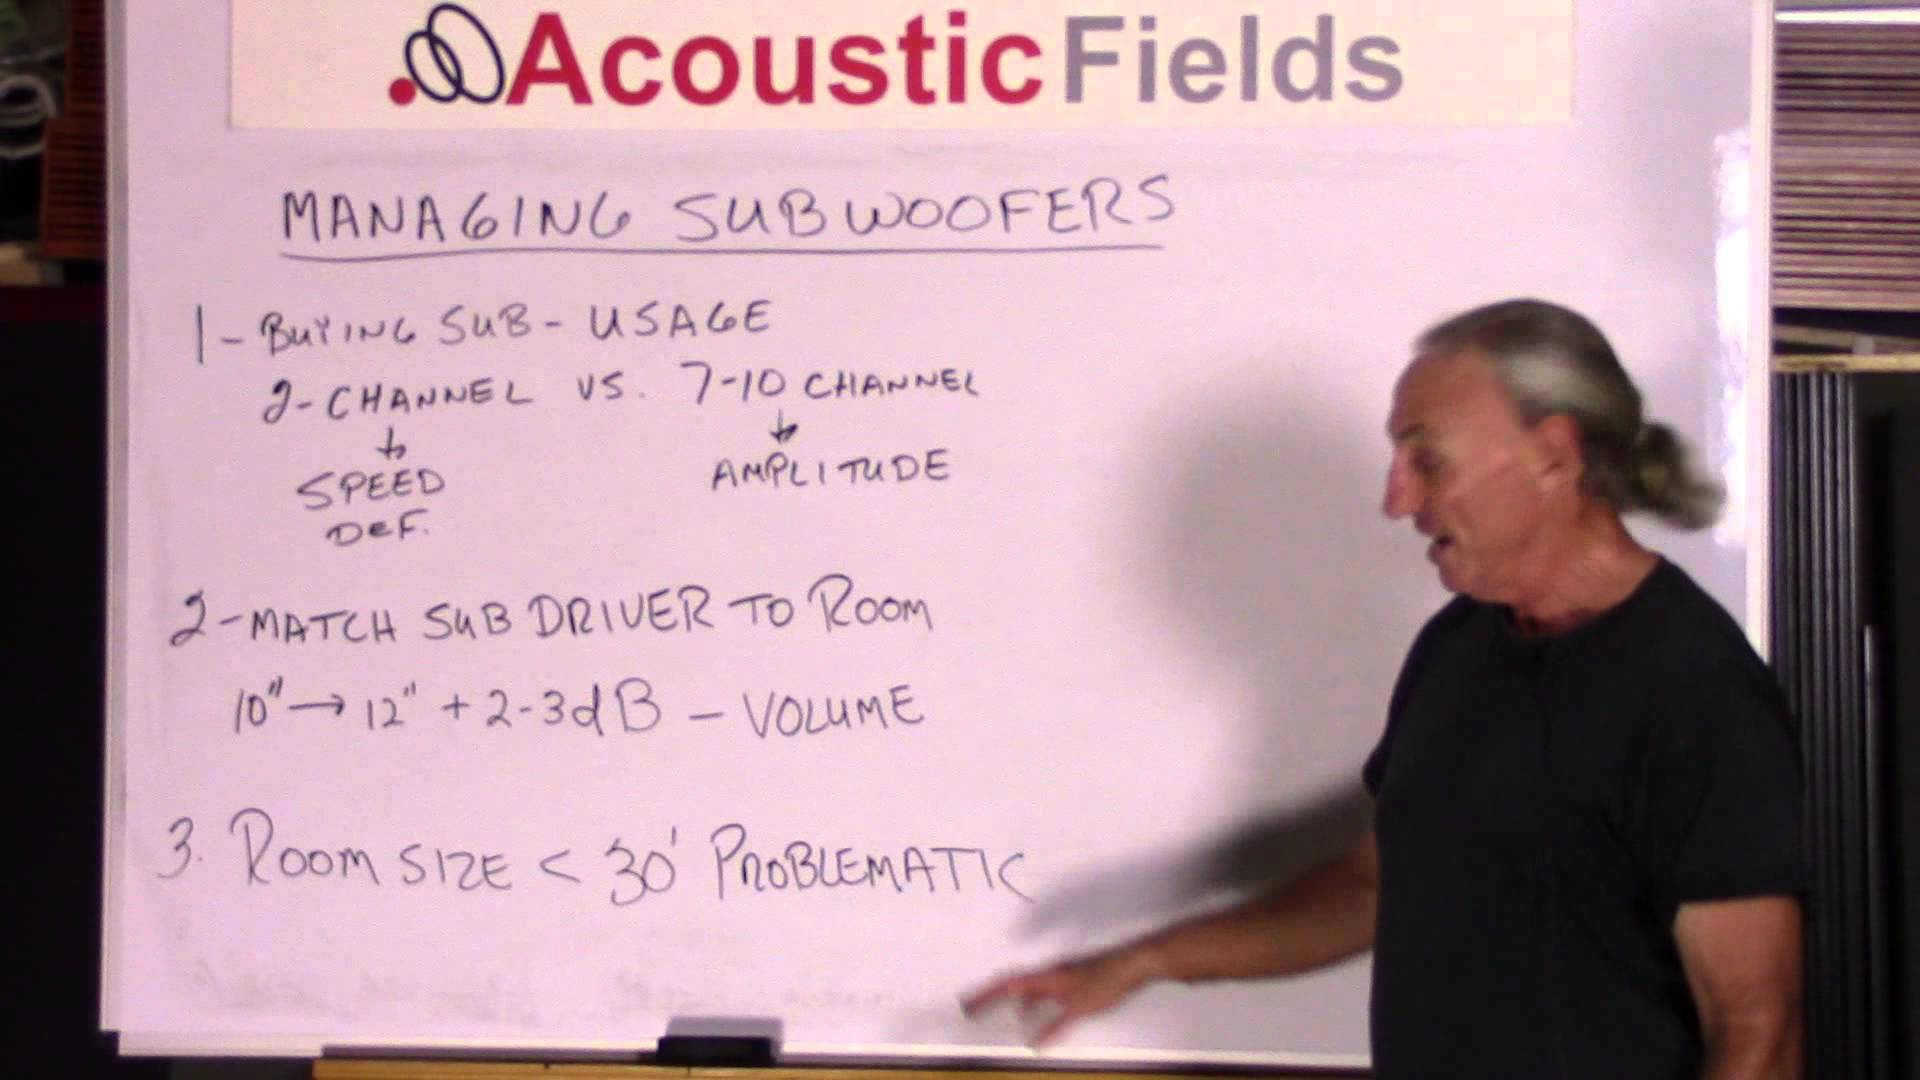 Subwoofer Acoustic Treatment – How To Manage Subwoofers The Correct Way